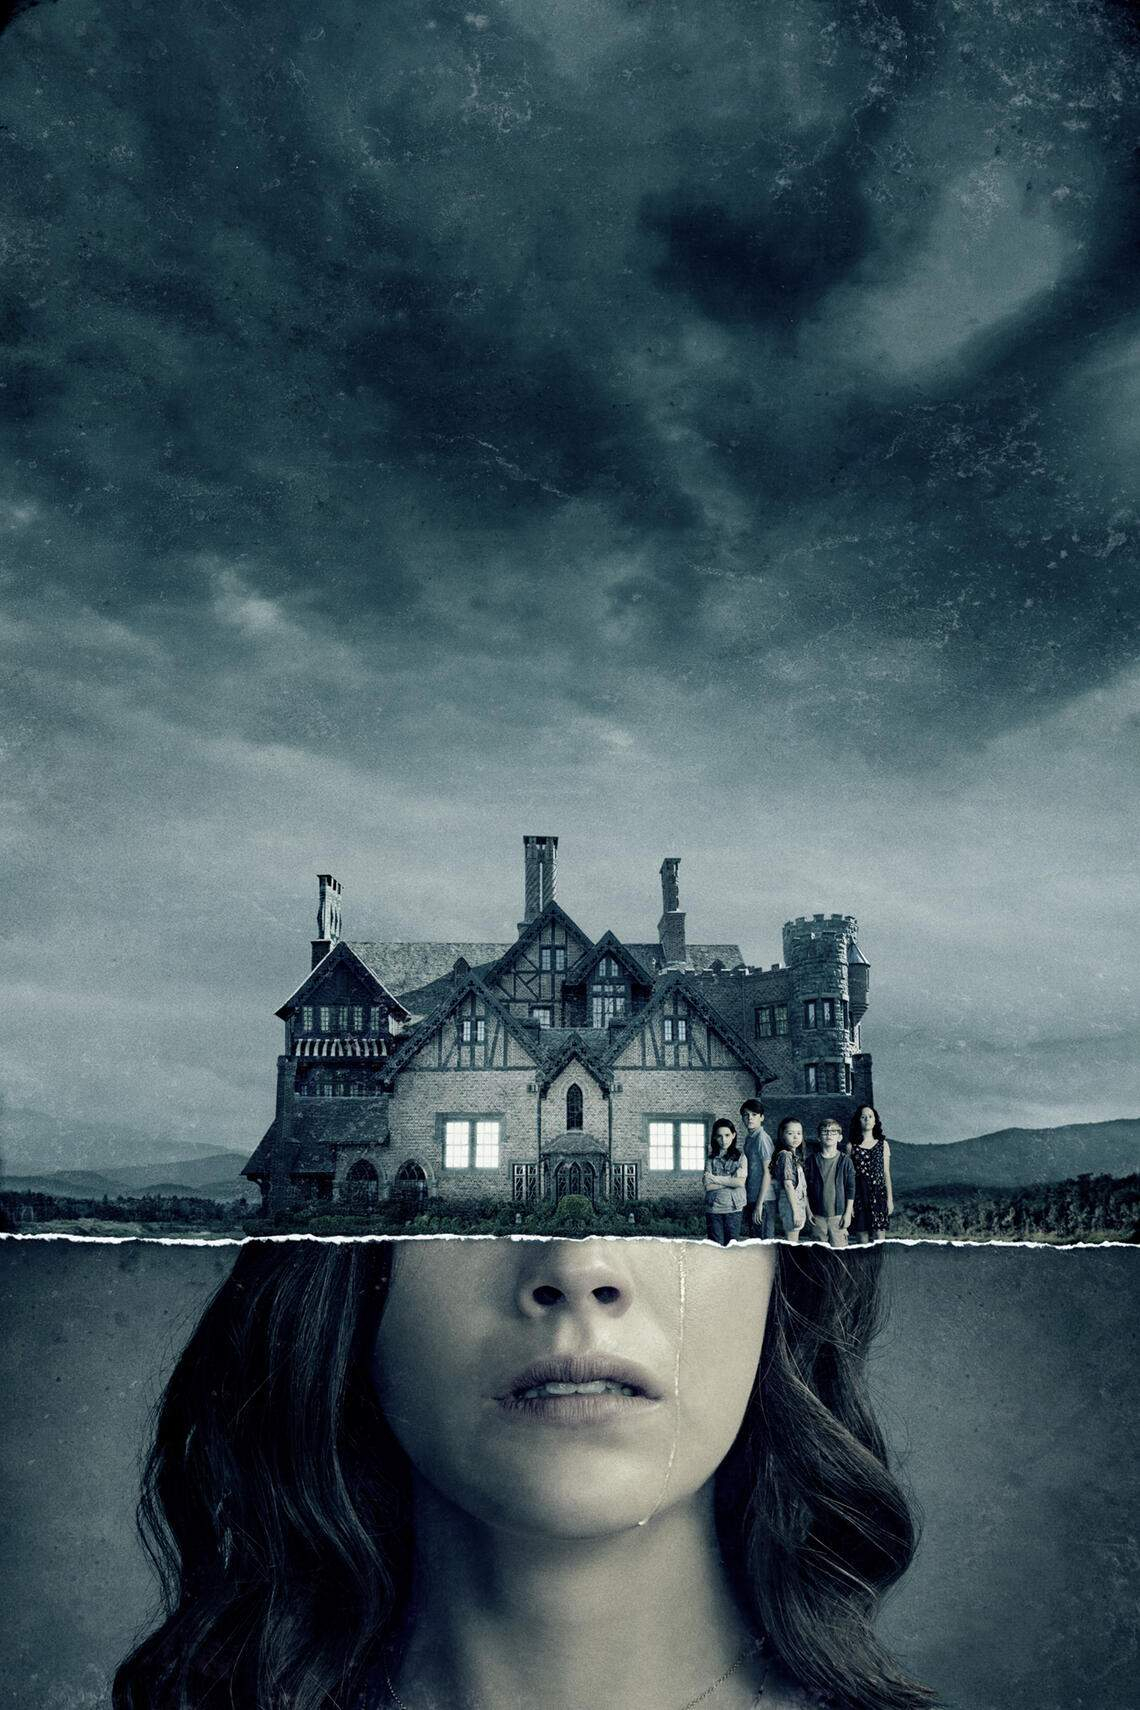 haunting-of-hill-house-poster.jpg